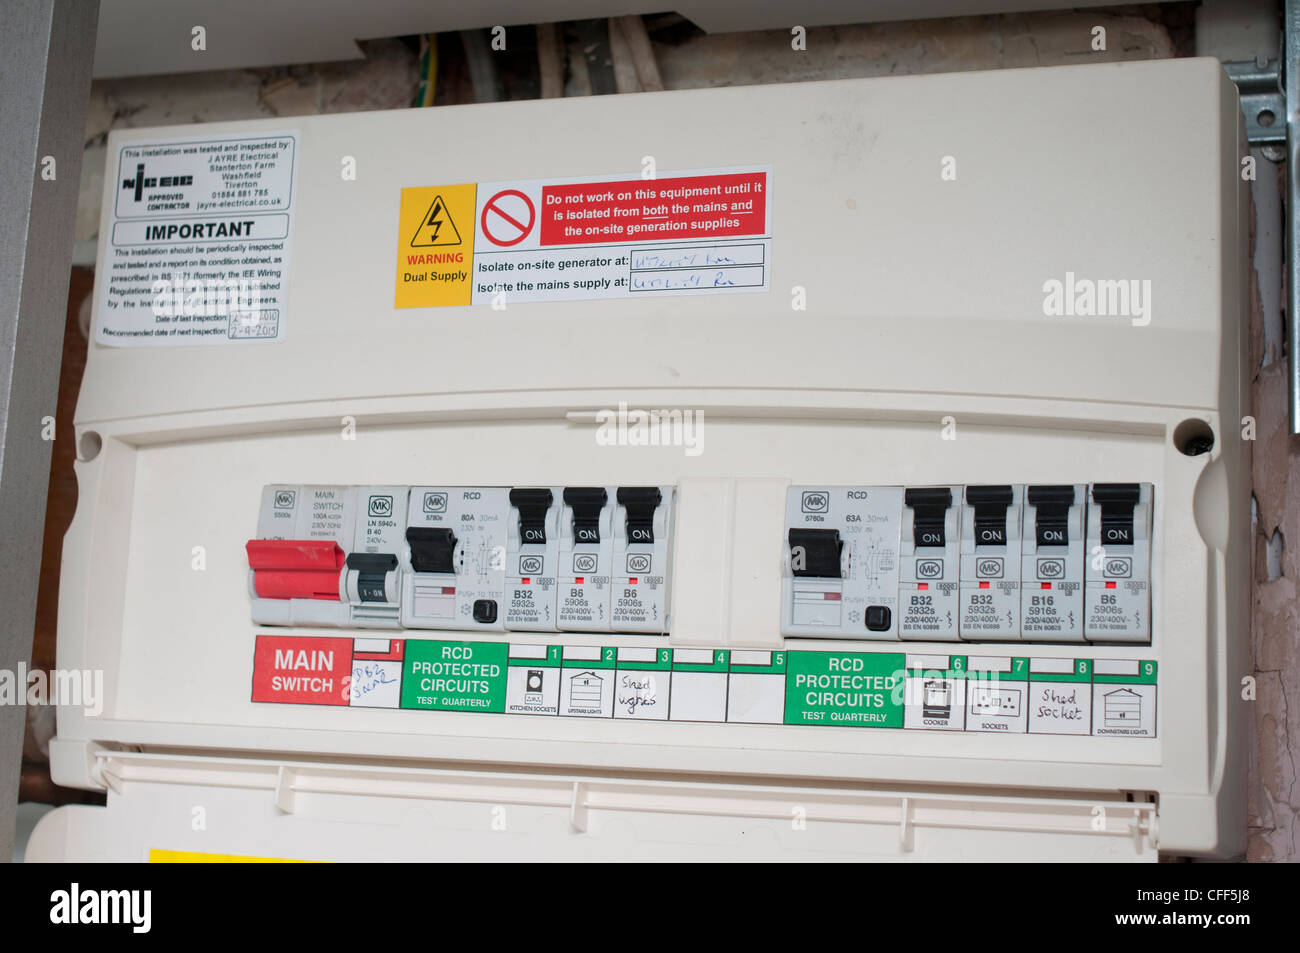 Domestic fuse box. - Stock Image